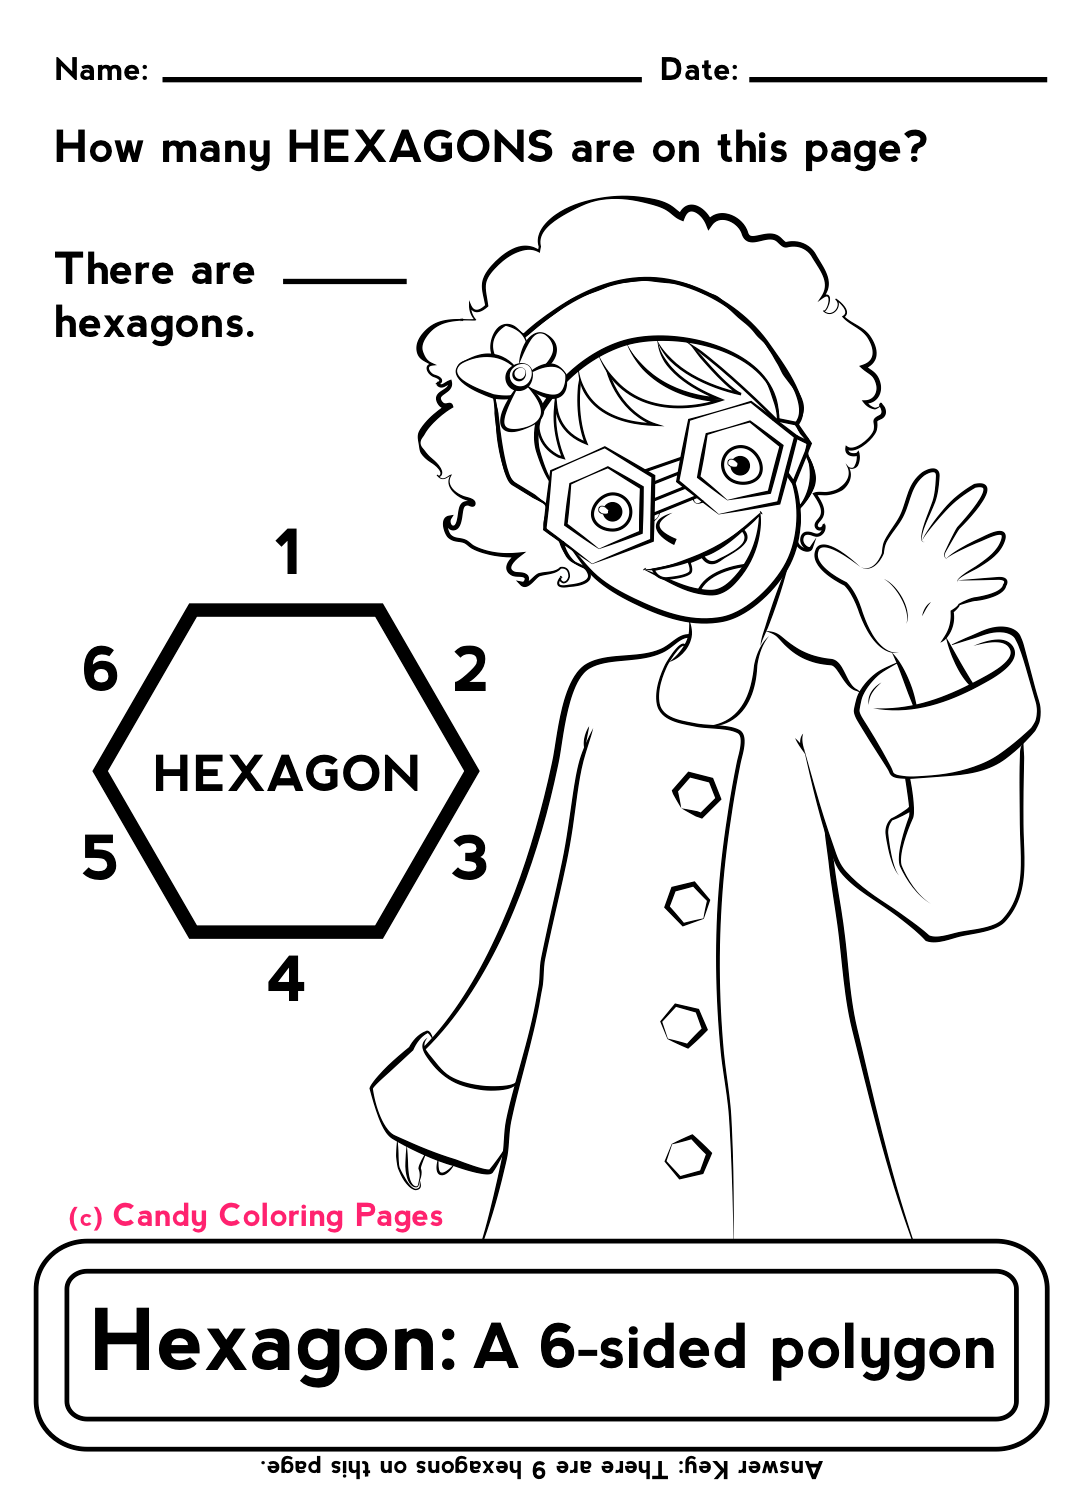 Wonderful! Free Math Worksheets And Coloring Pages For Kids!